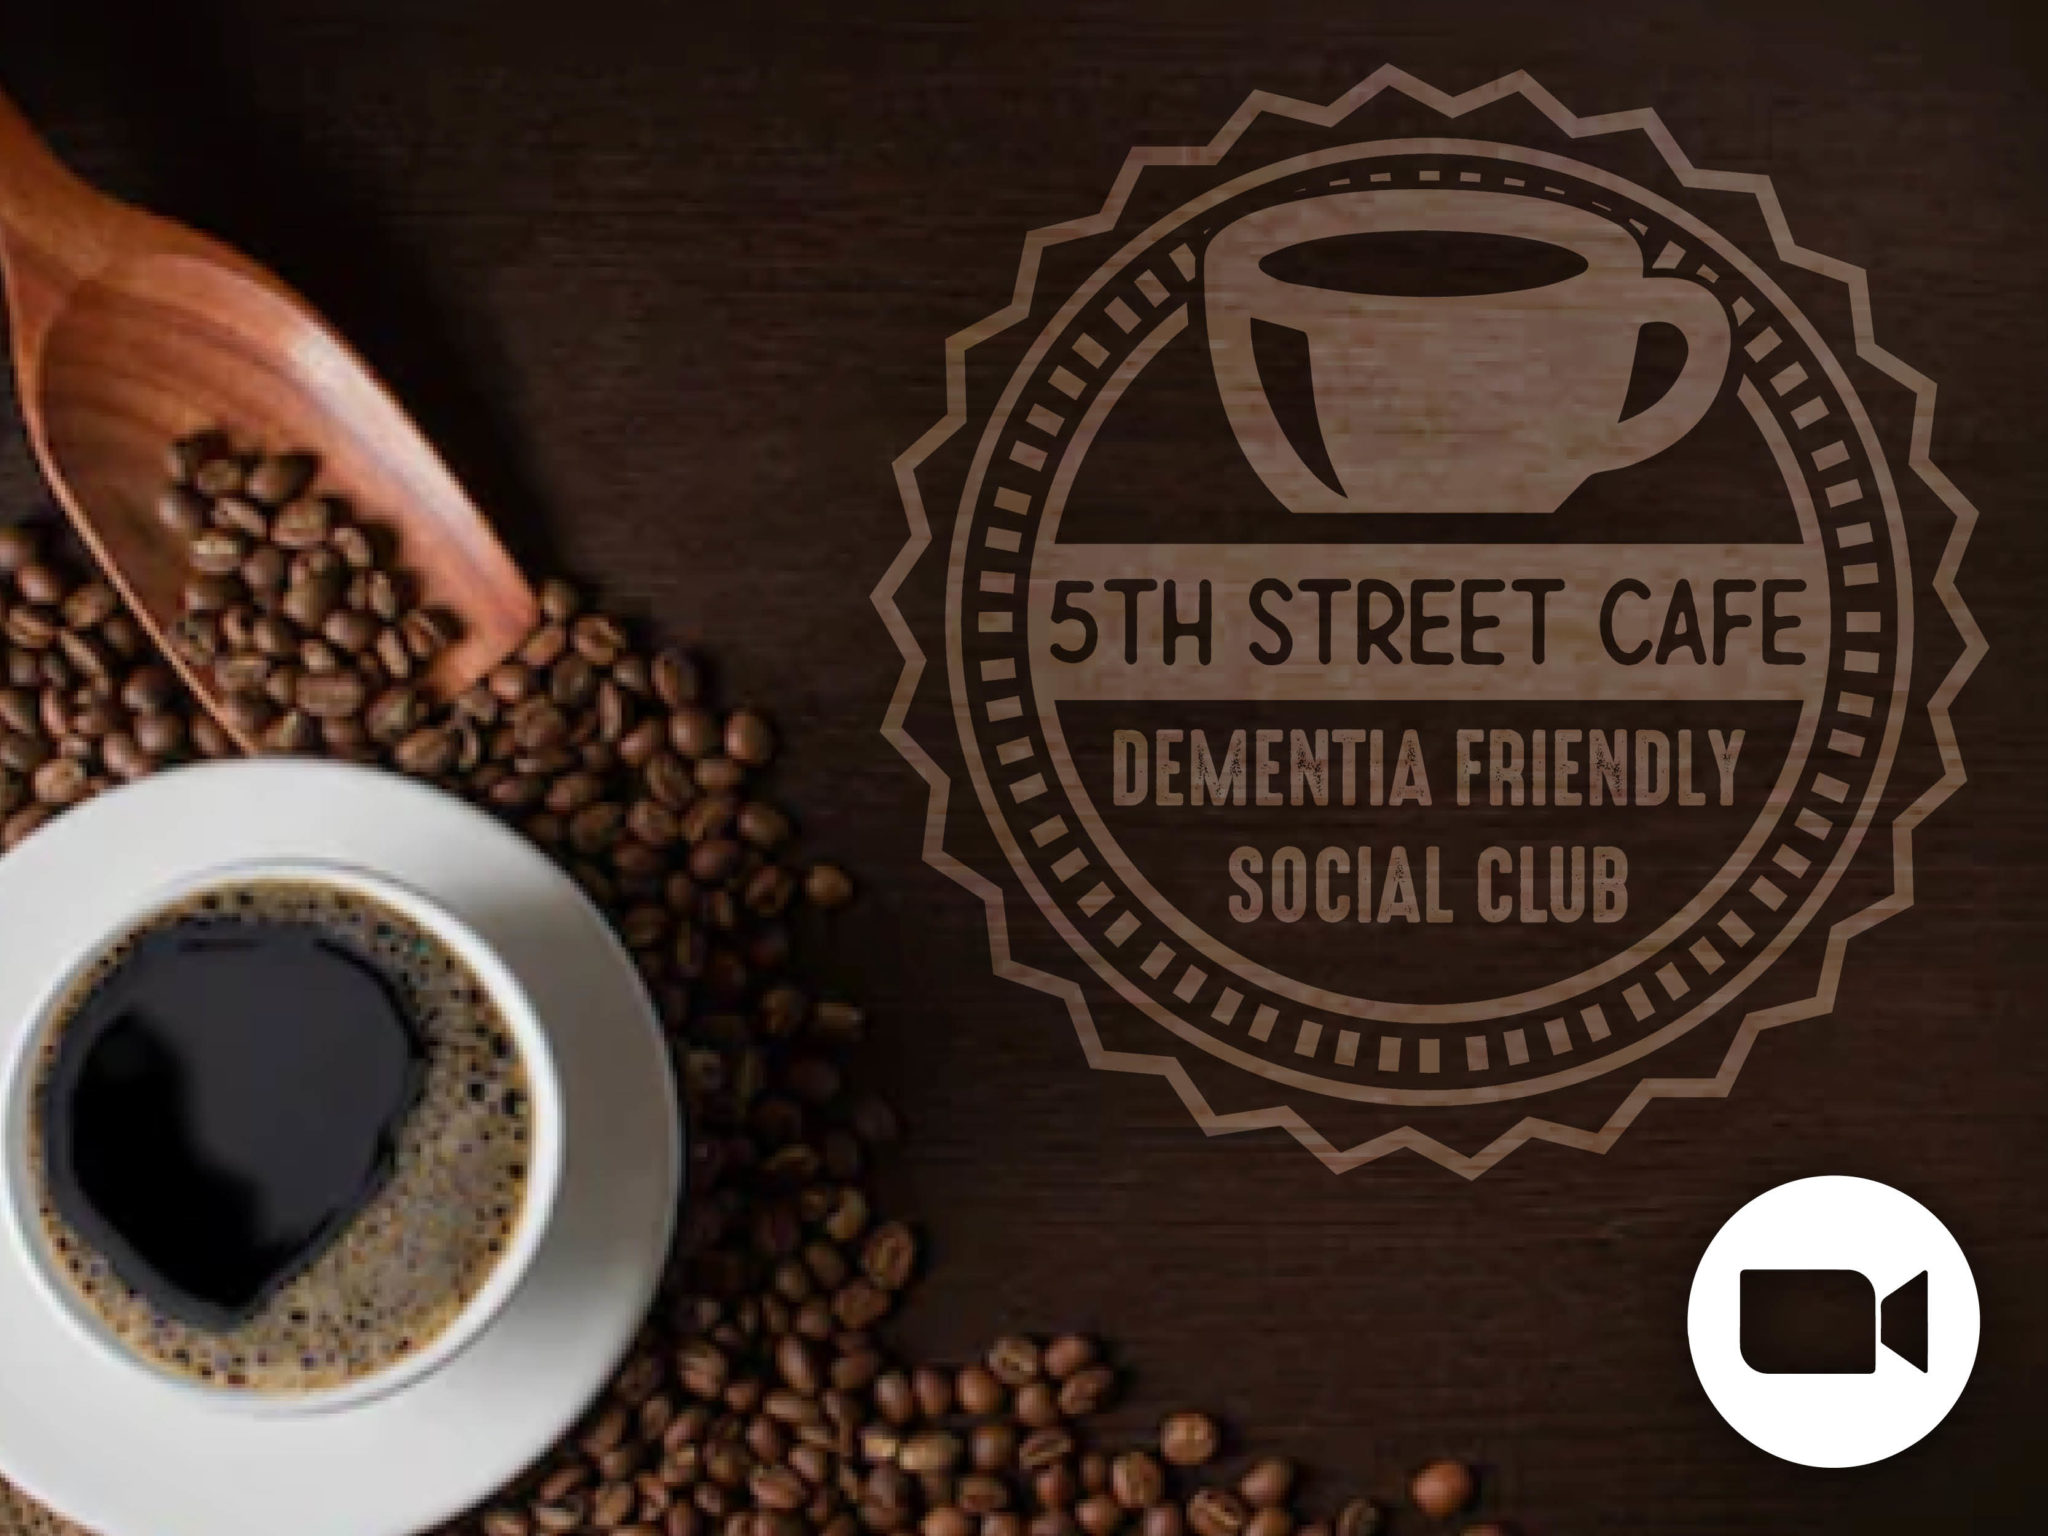 5th St. Café: A Dementia Friendly Social Club